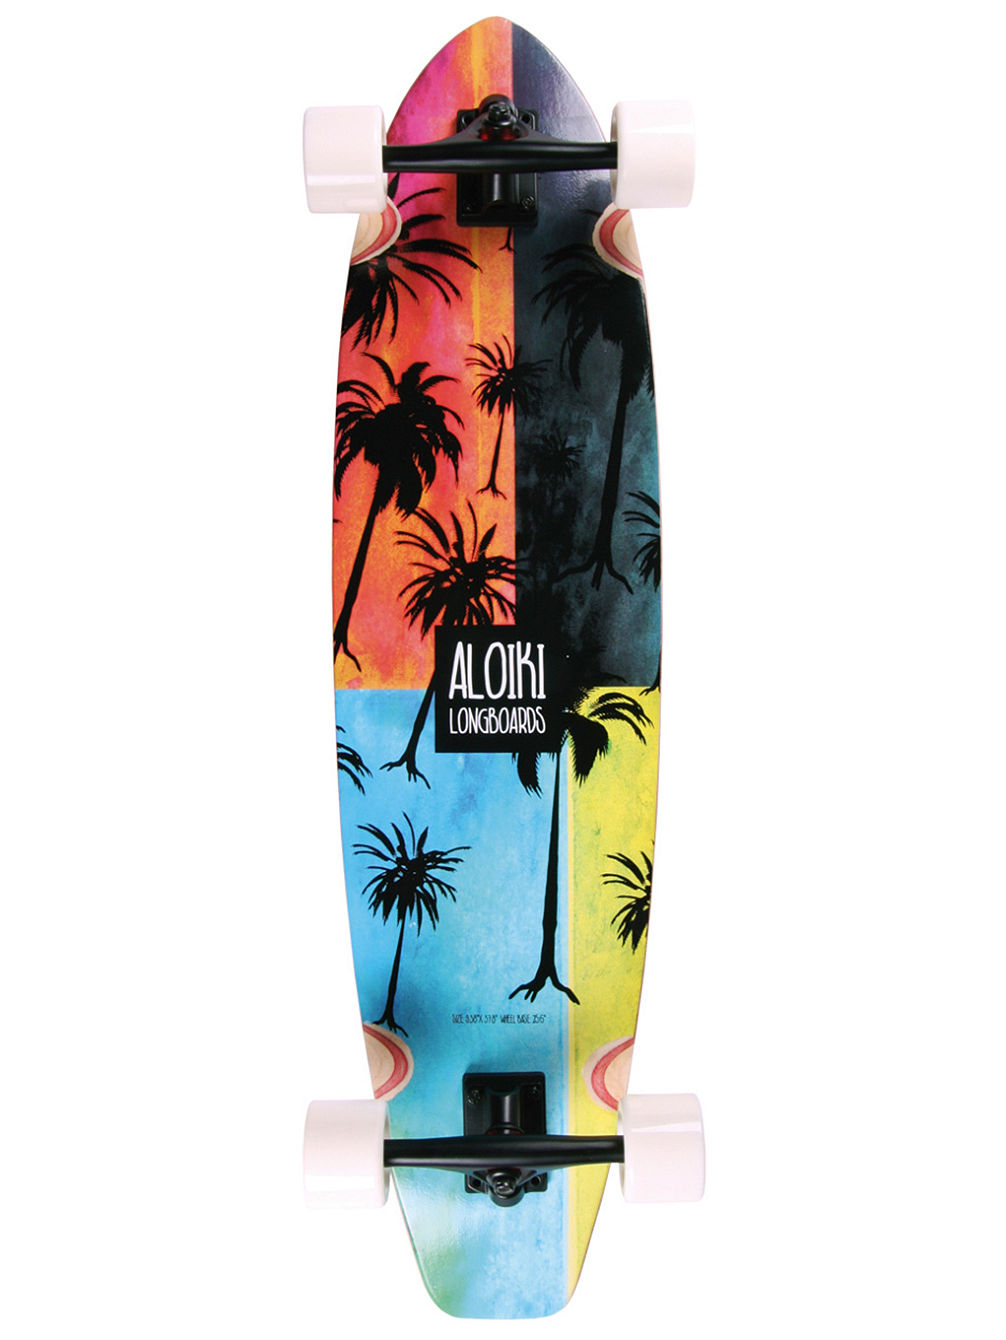 aloiki longboards bali kicktail 9 4 x 37 8 complete. Black Bedroom Furniture Sets. Home Design Ideas